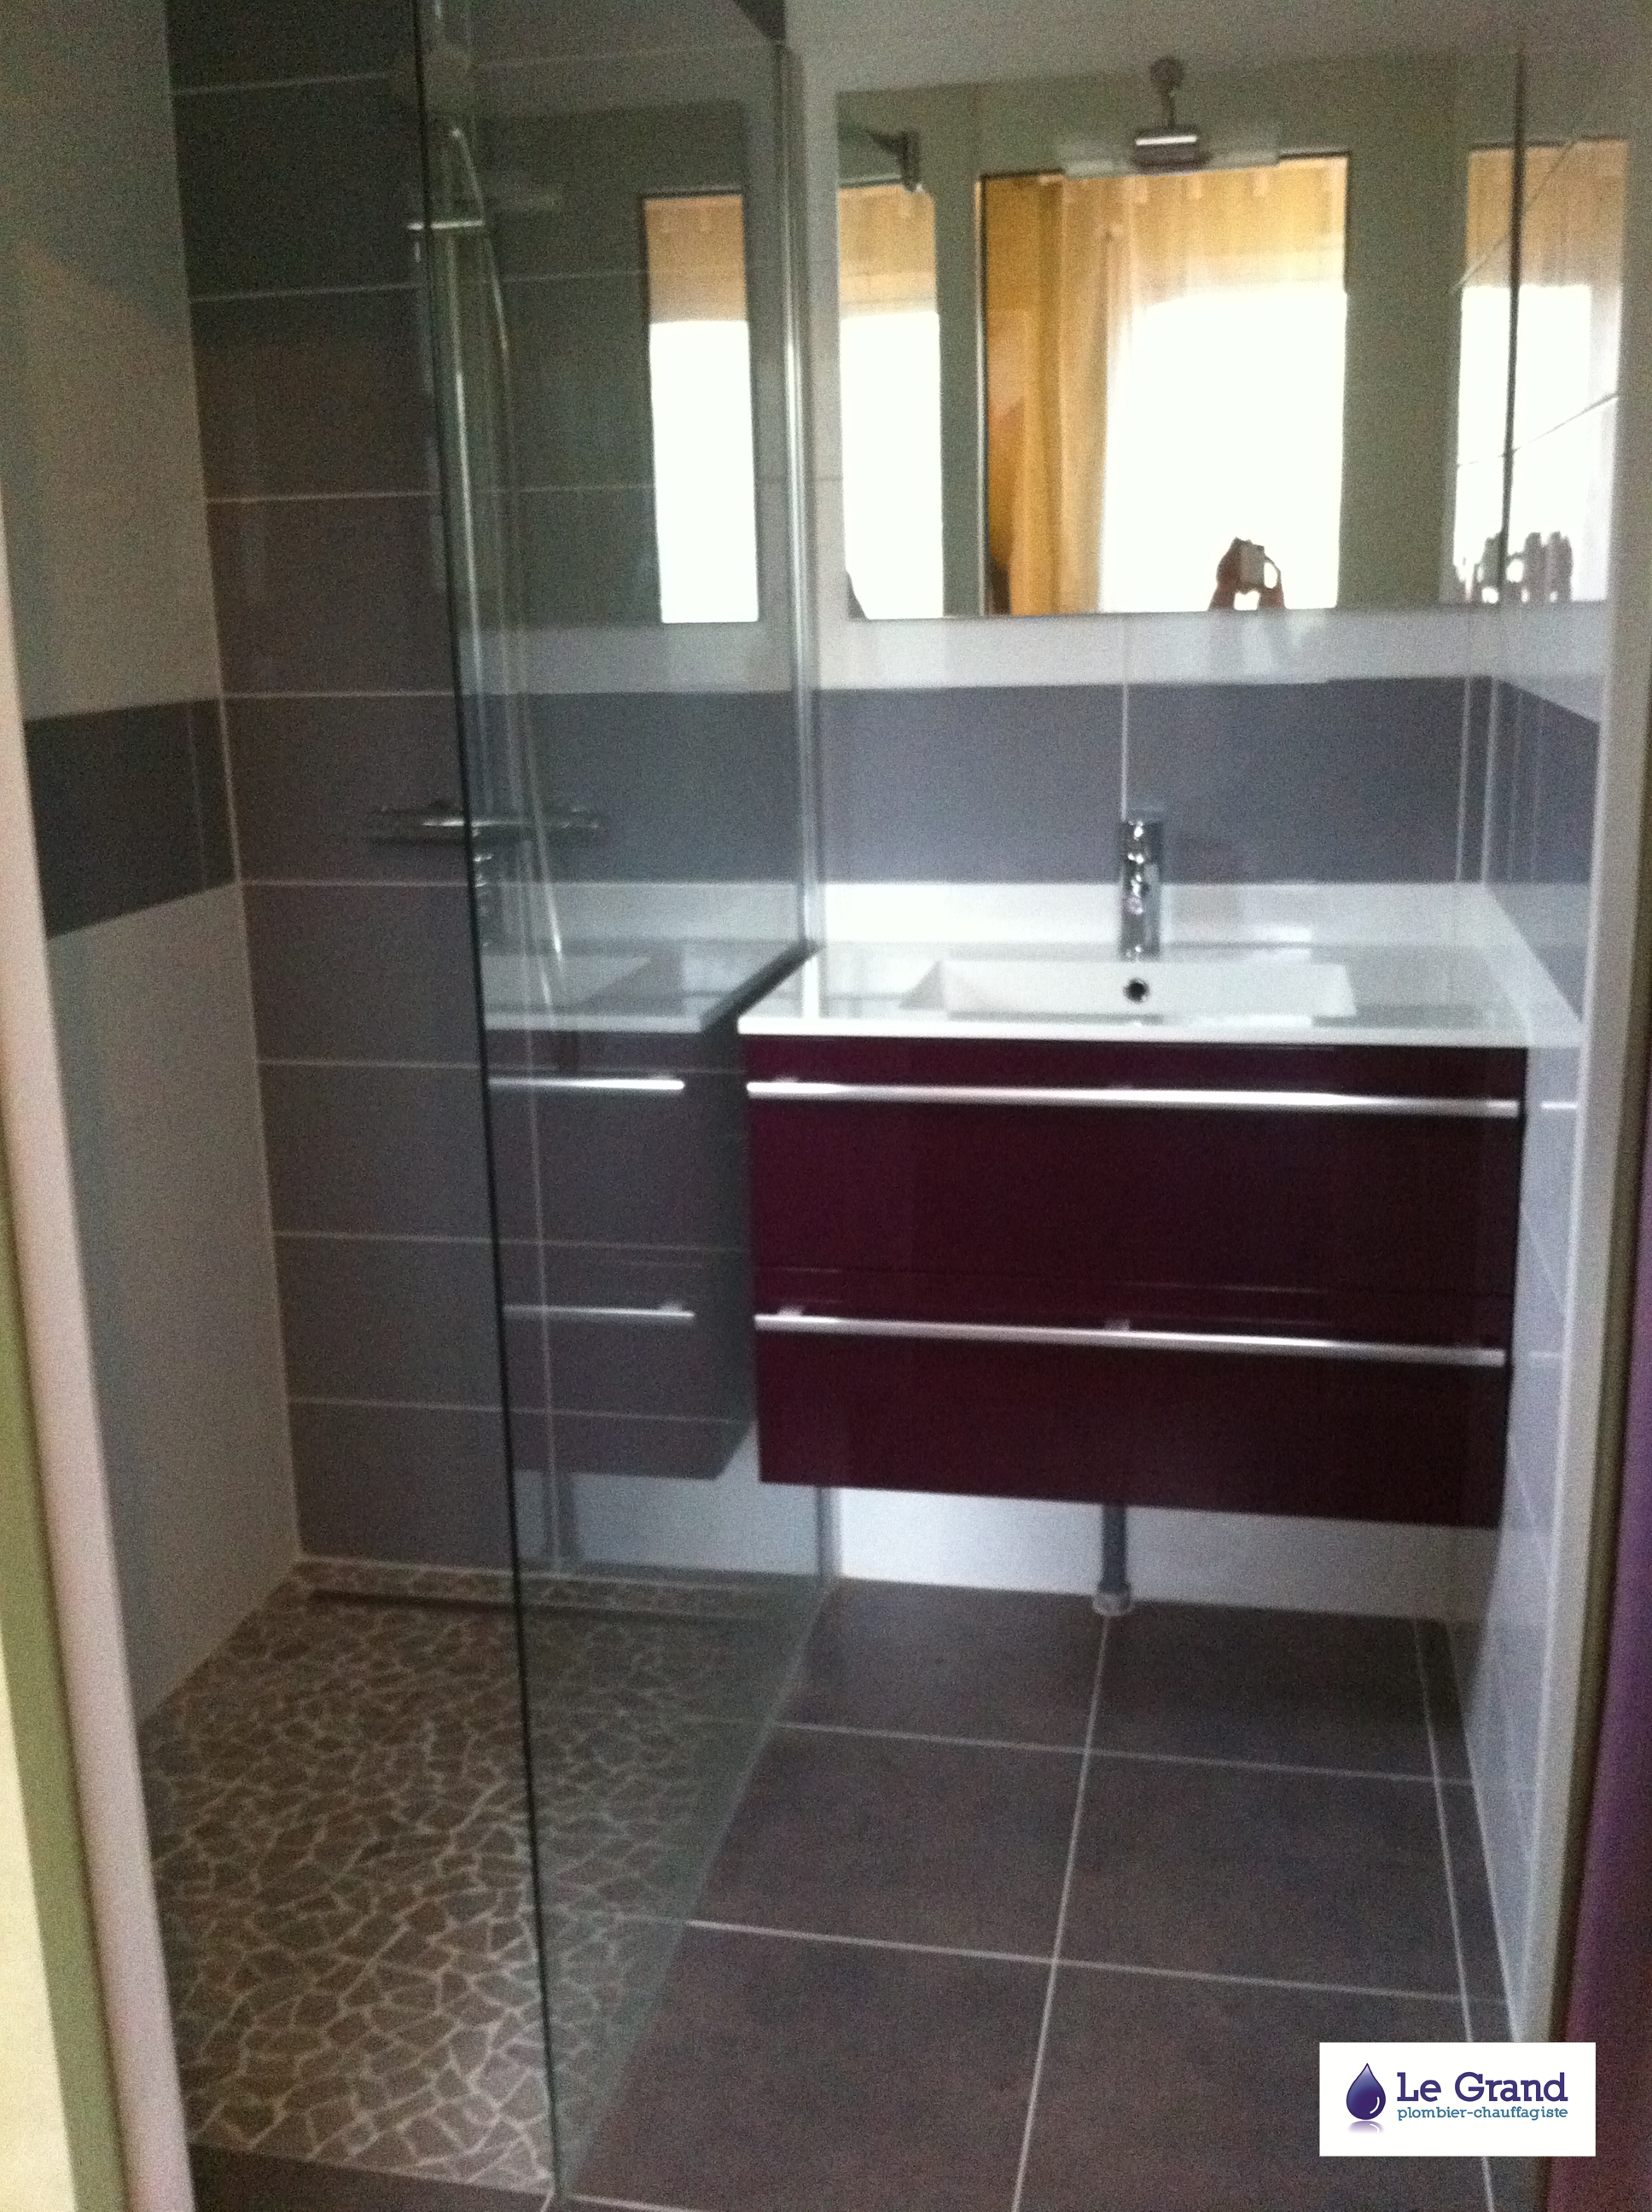 301 moved permanently Salle bain italienne douche